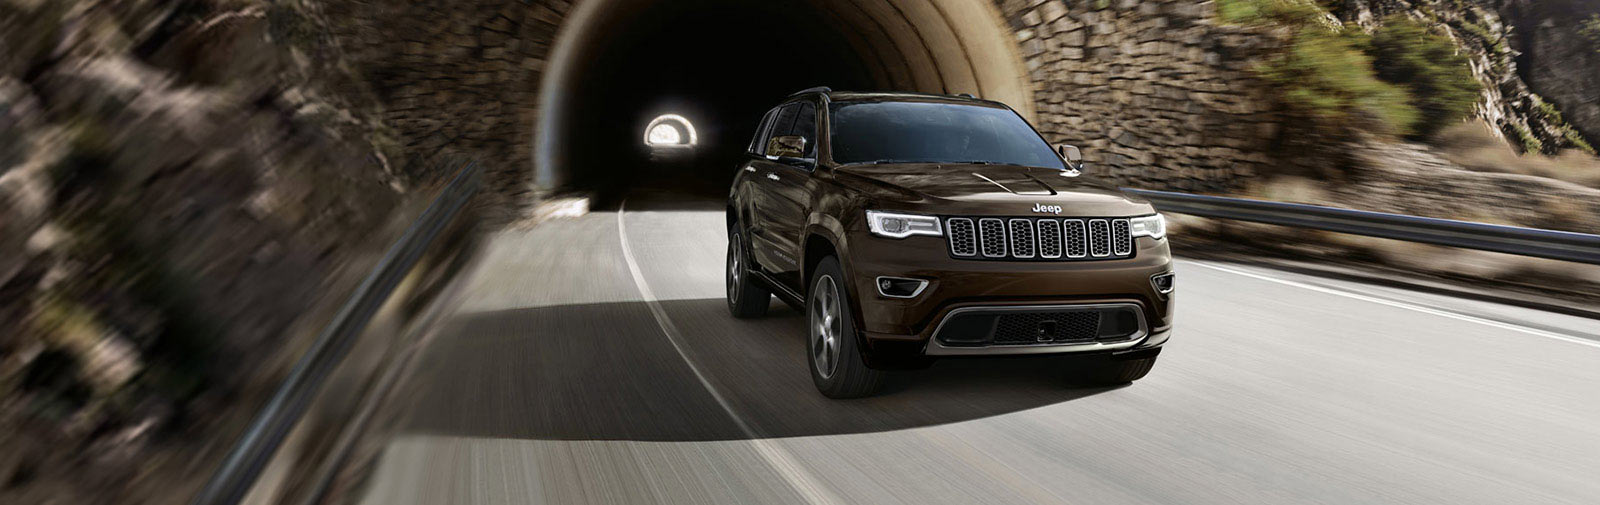 Jeep® Grand Cherokee SUV Personal Contract Purchase Options